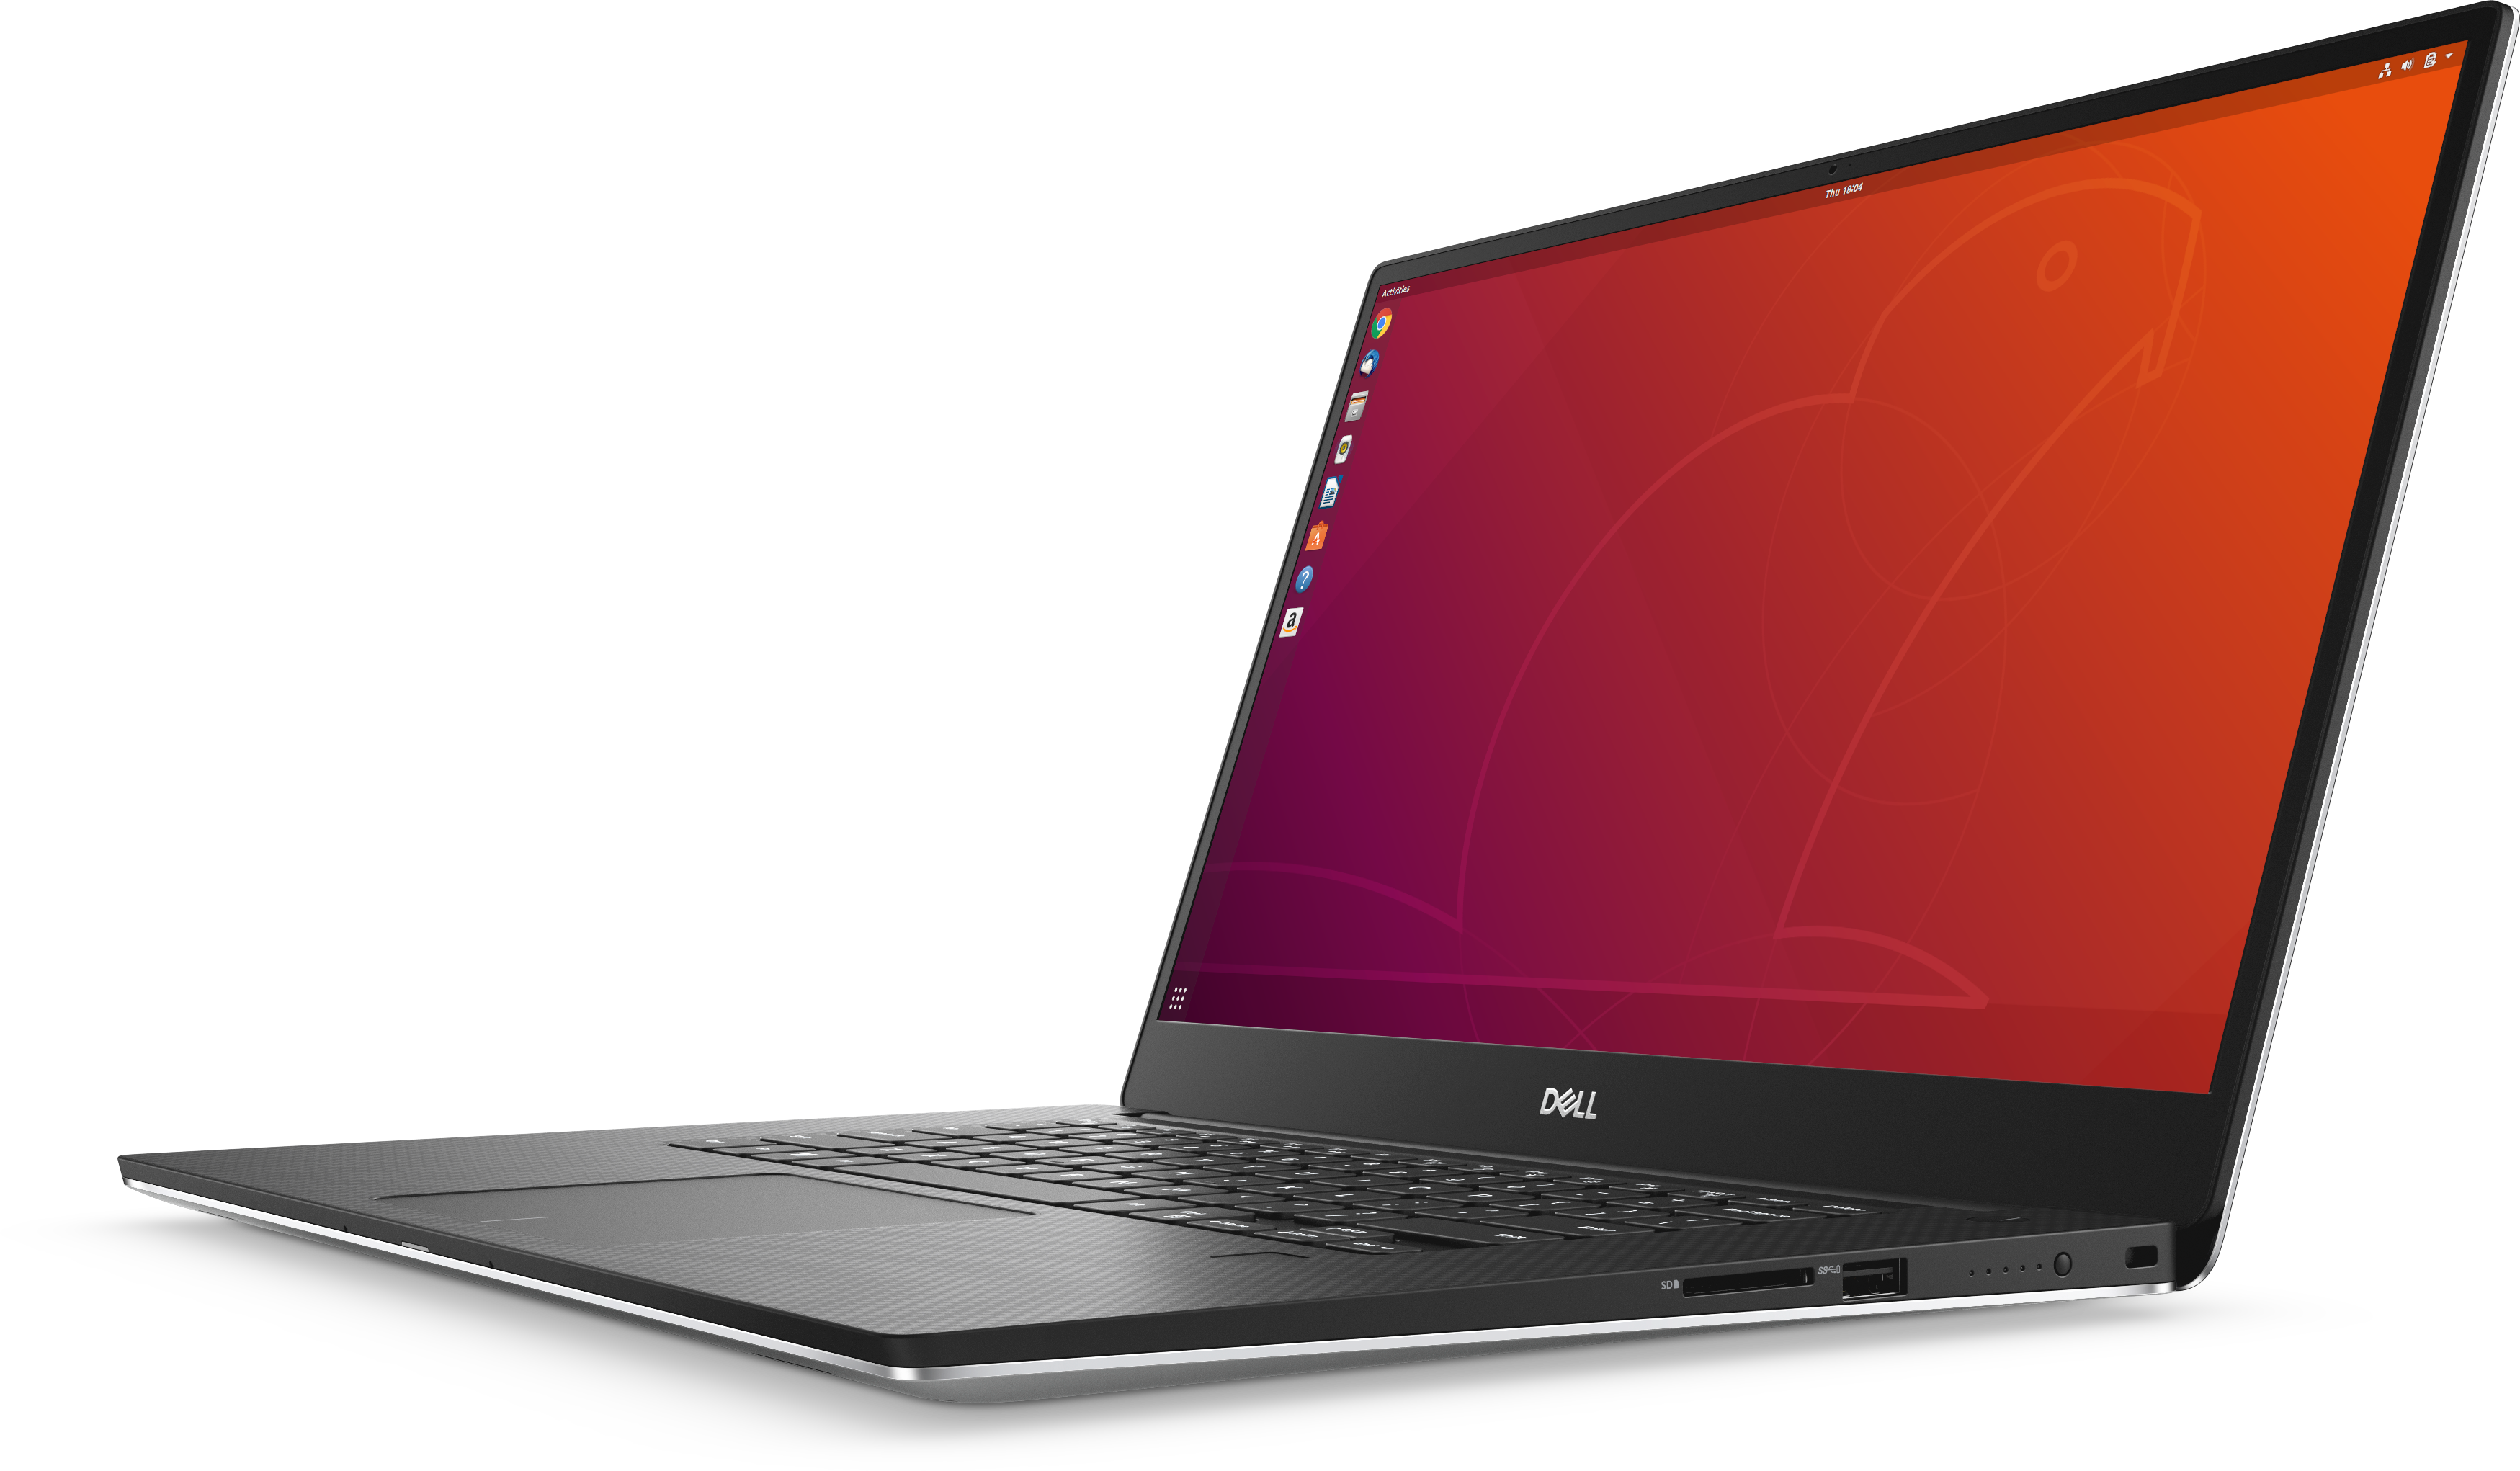 Ladies and Gentlemen, introducing the Dell Precision 5540